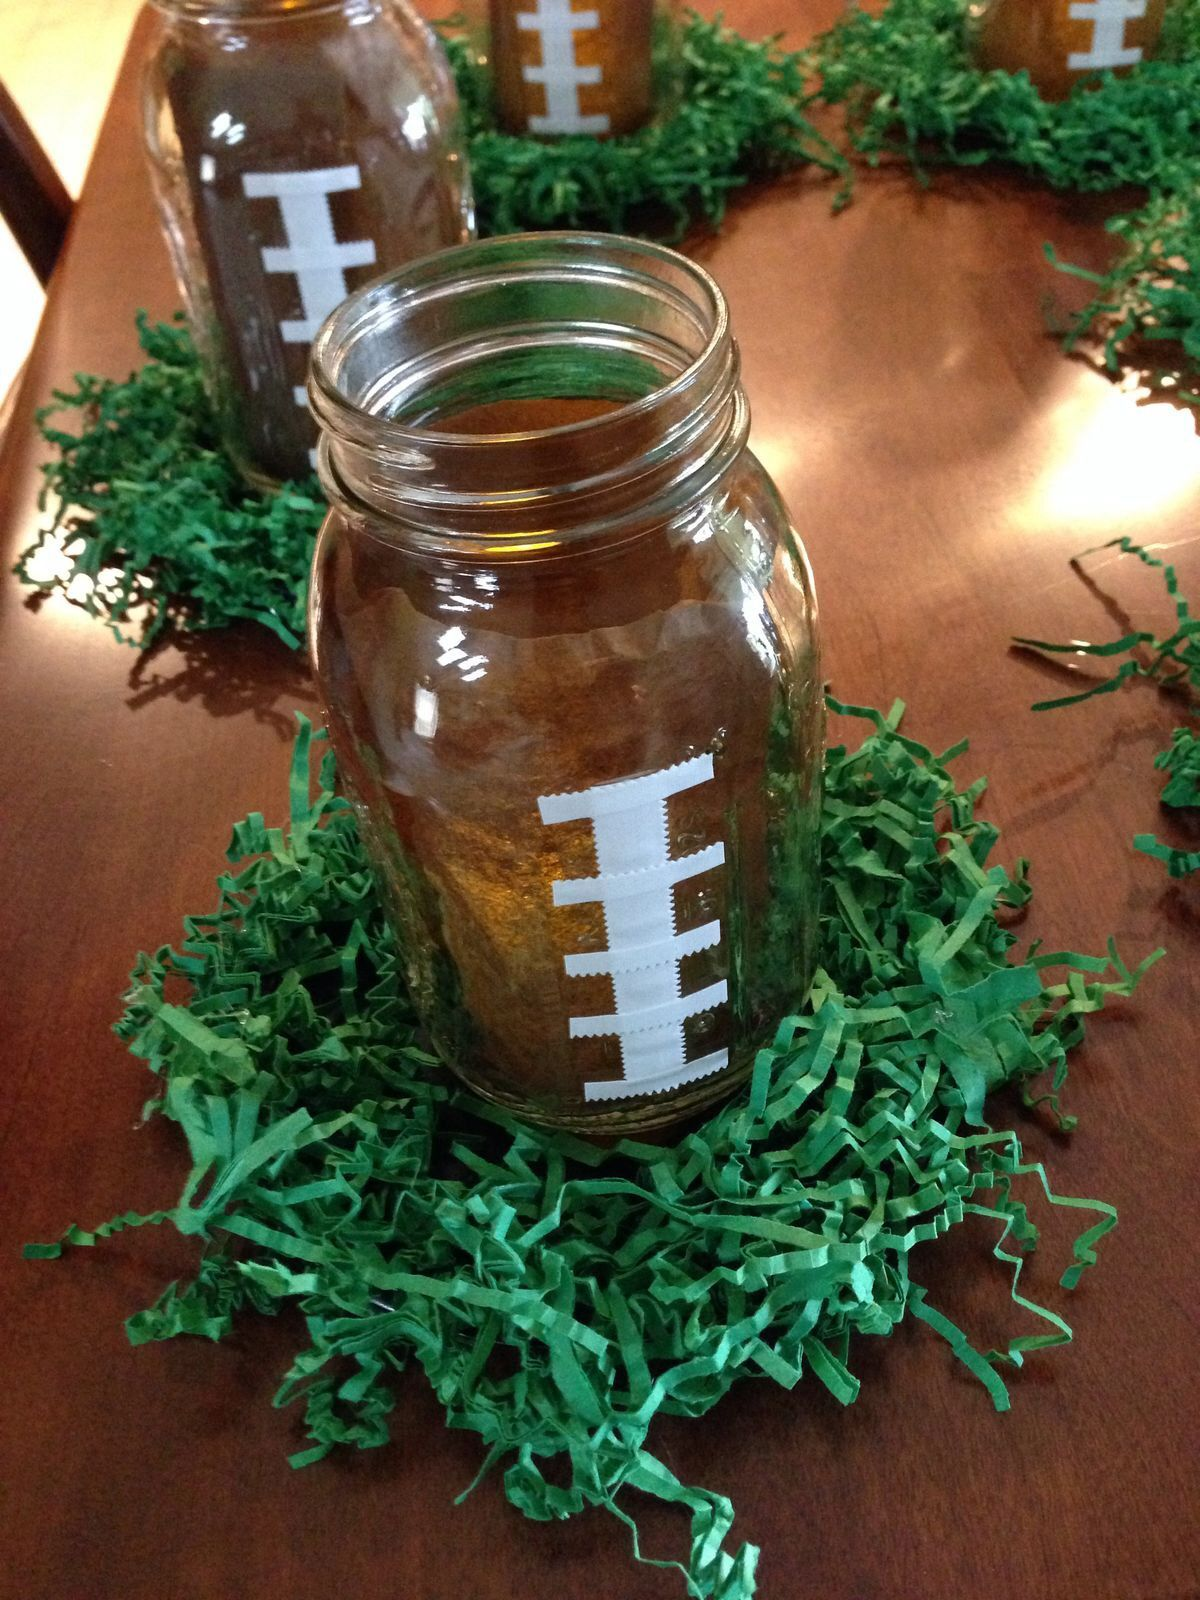 Make Football Banquet Centerpiece : Football centerpiece pinterest